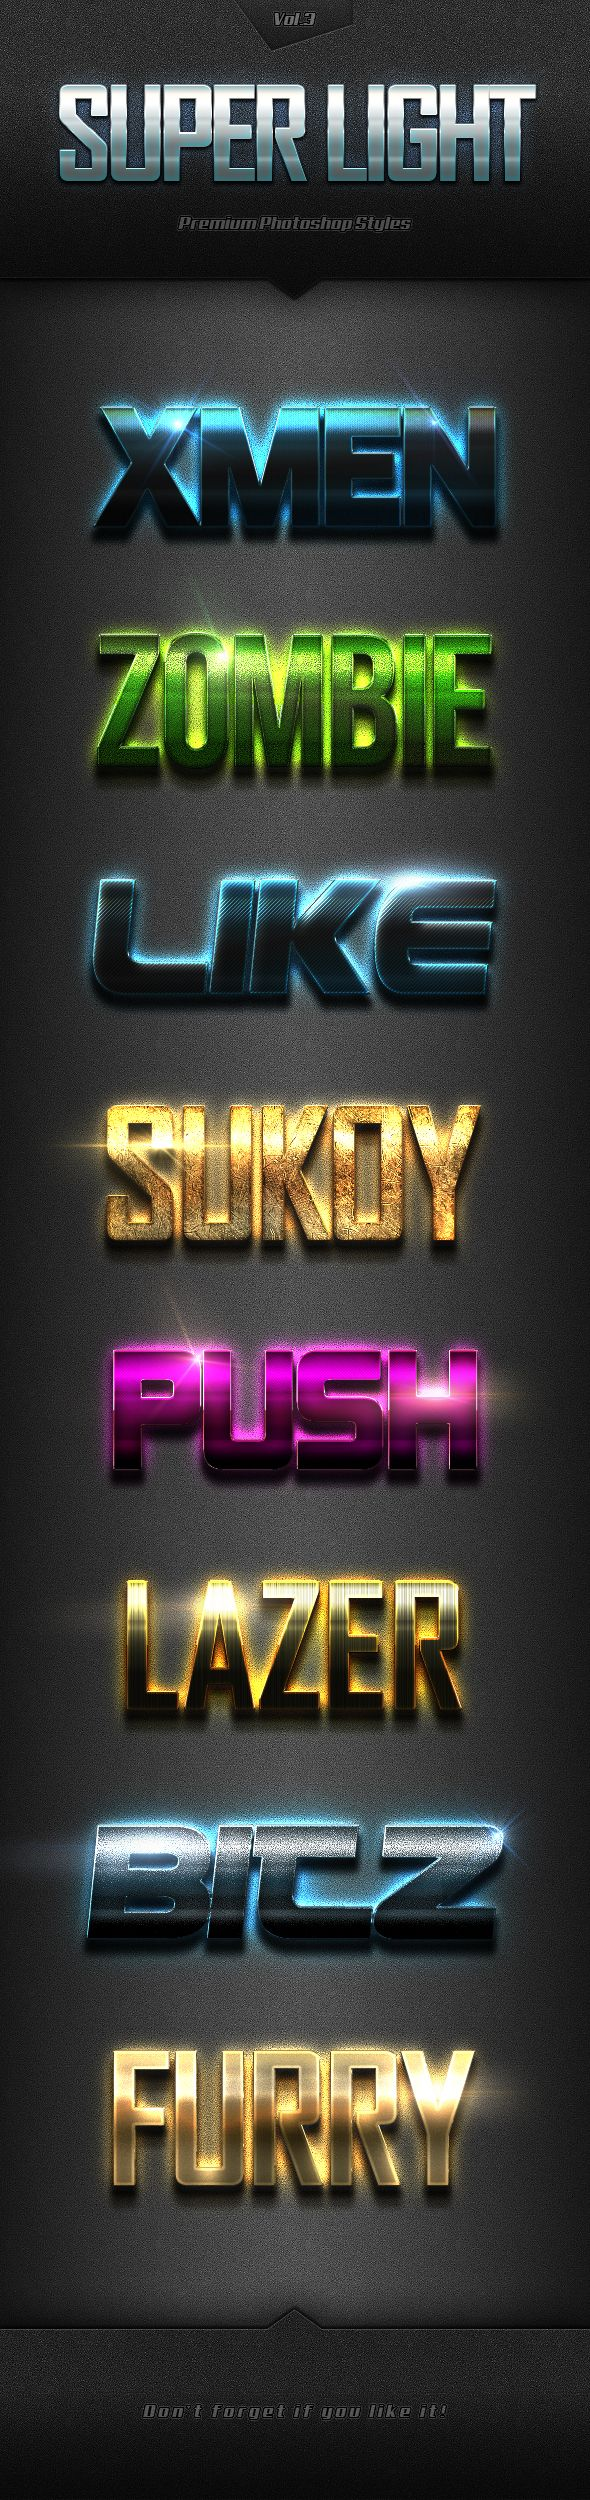 Super Light Text Effects for Photoshop